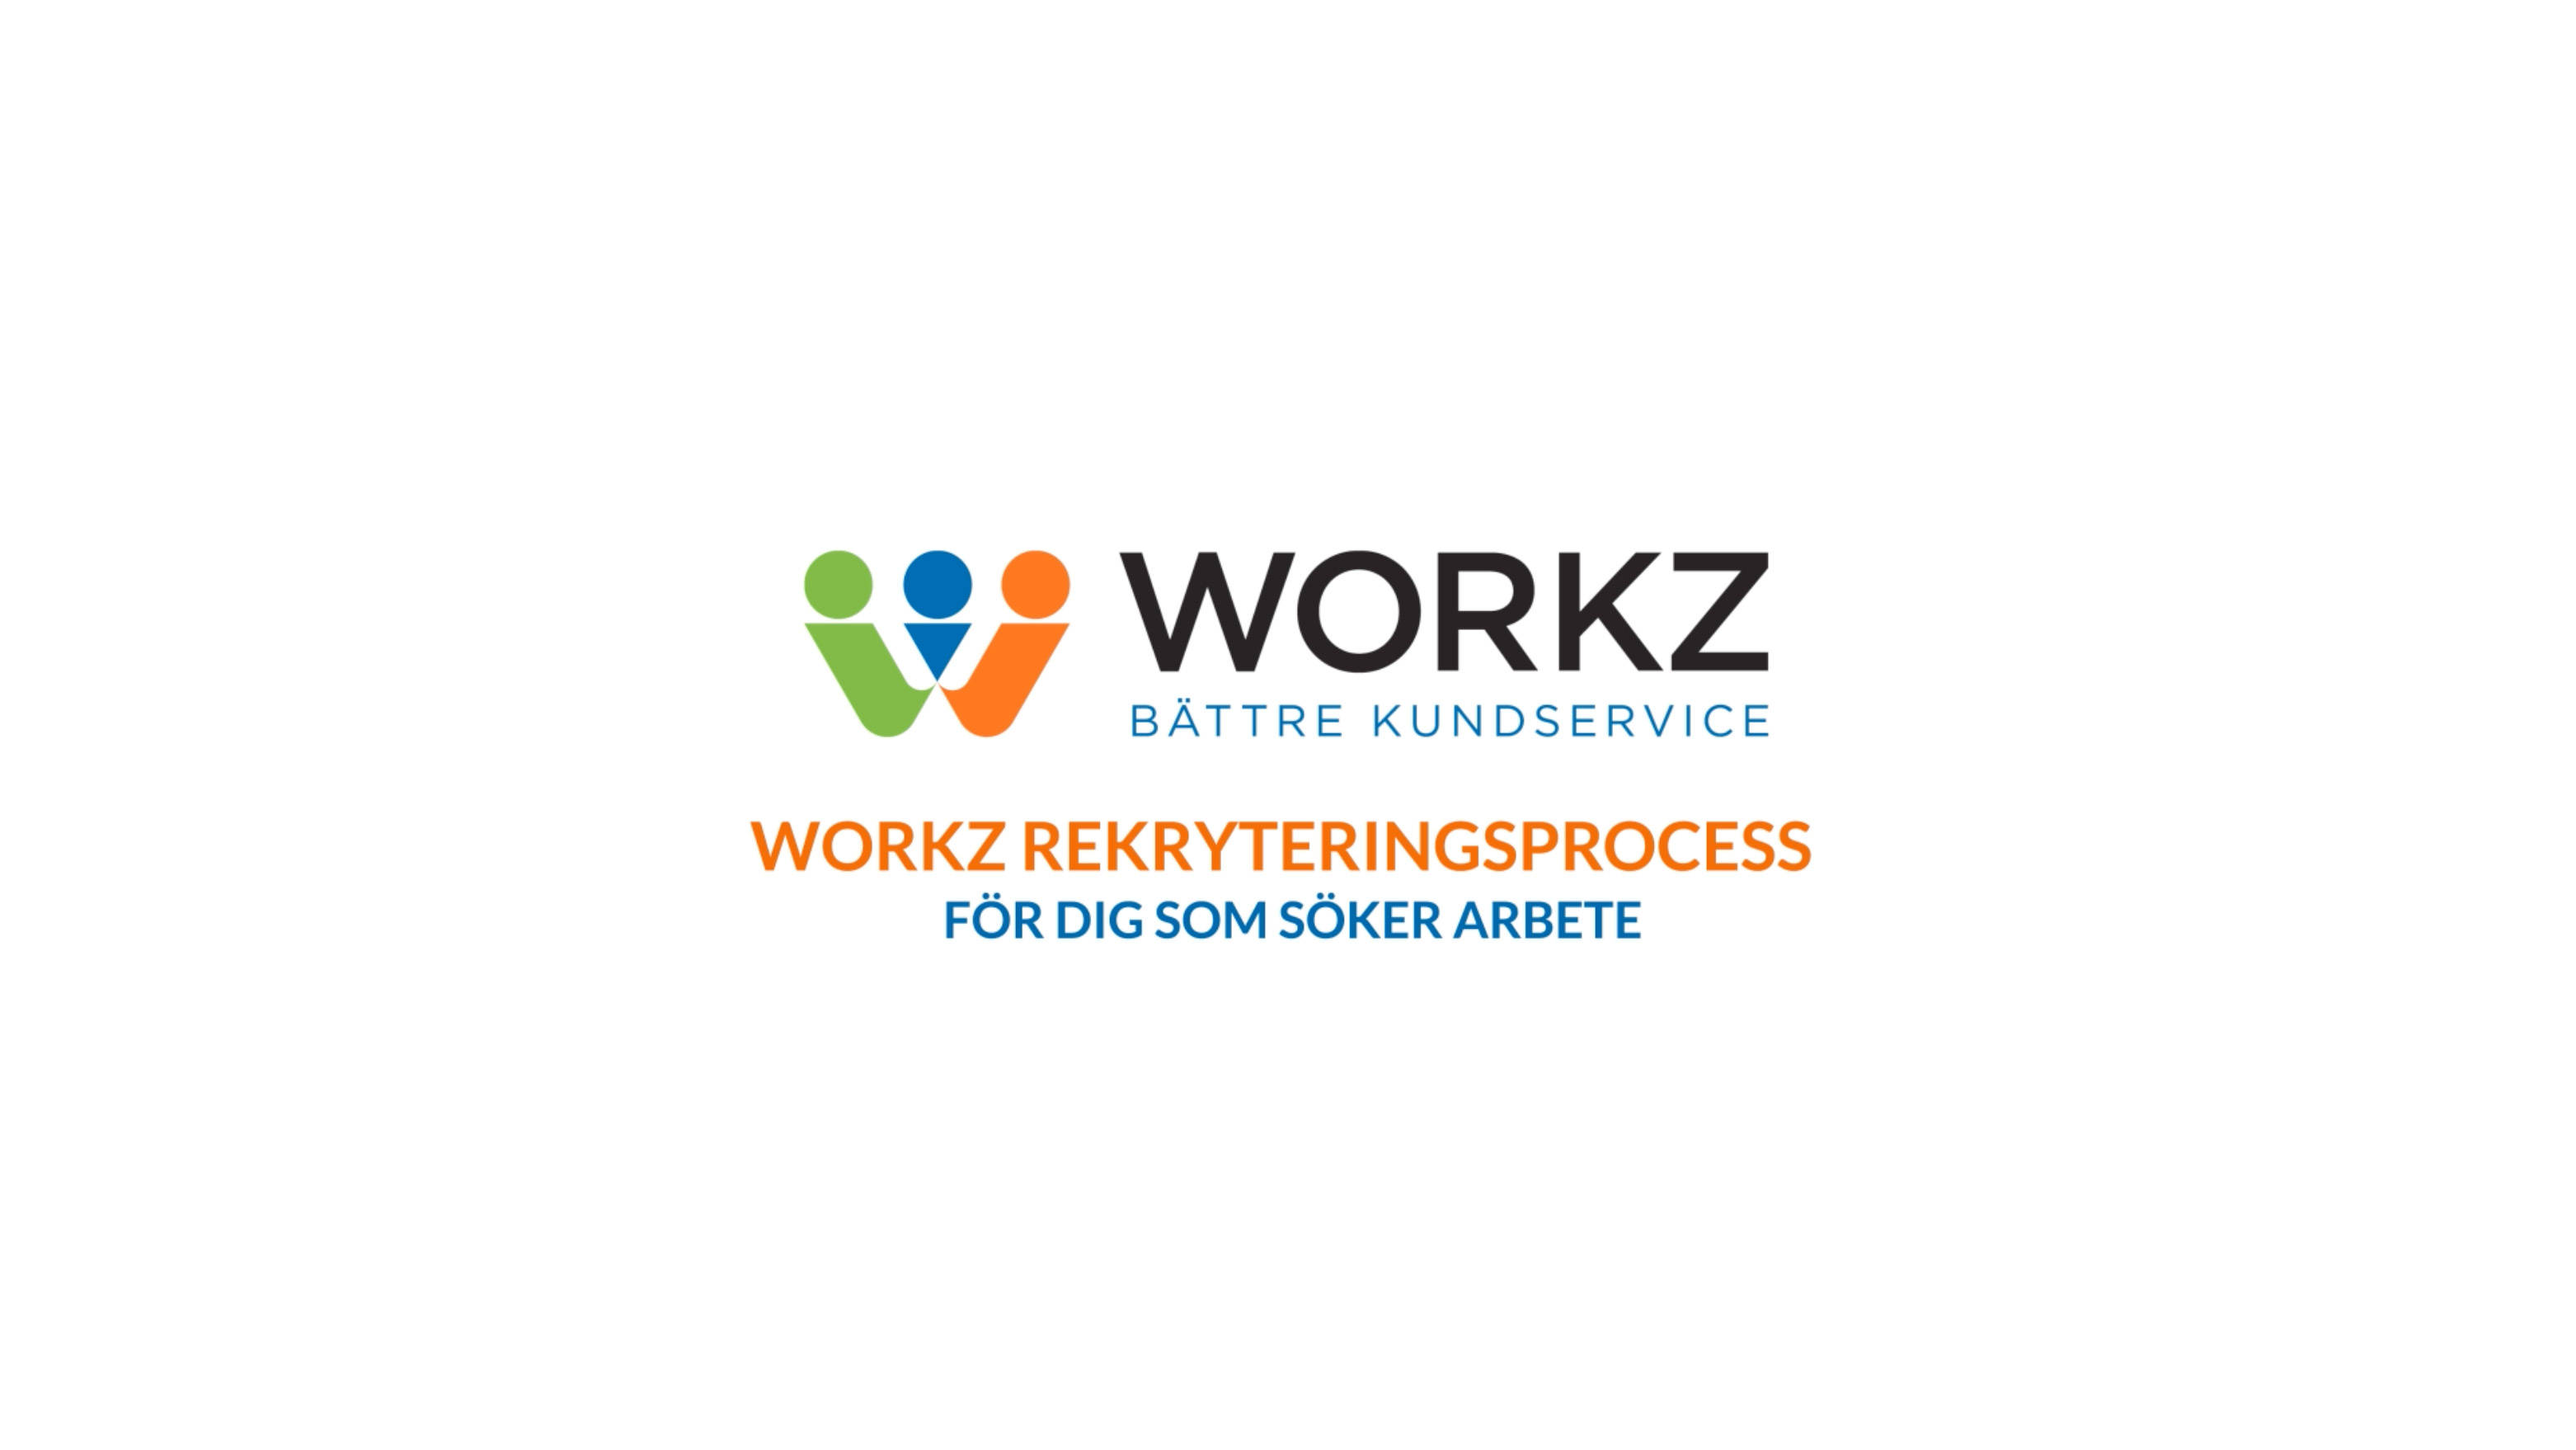 workz-for-jobbsokare